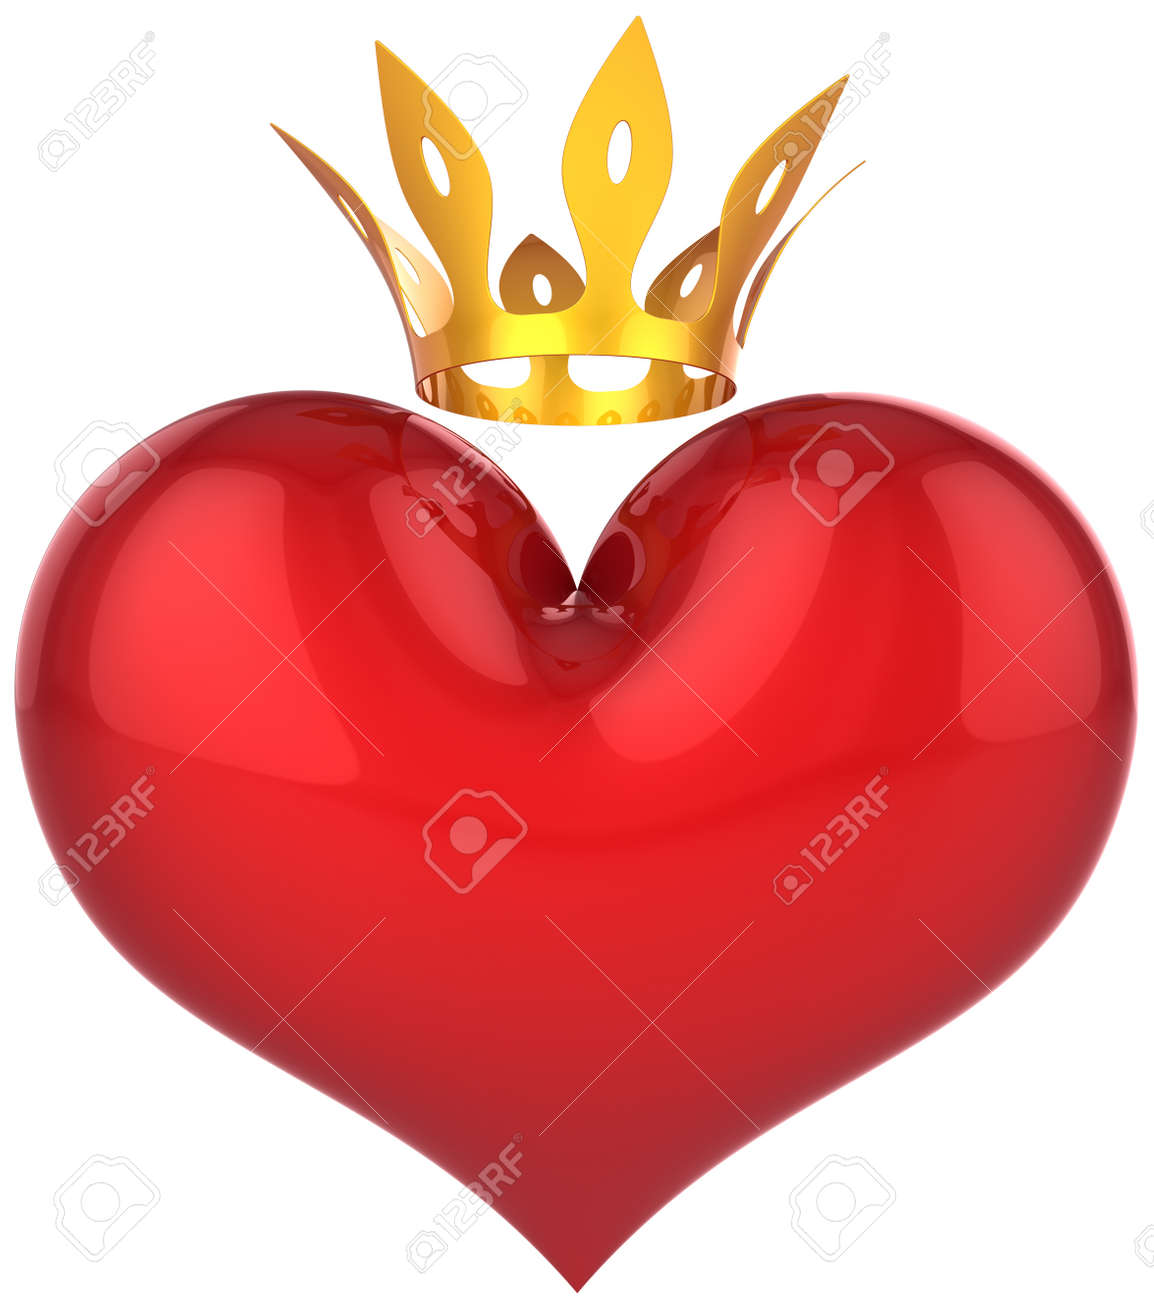 Heart of king abstract. Lucky lover concept. Big red shiny heart shape with a golden crown. This is a detailed 3D rendering (Hi-Res). Isolated on white. Love will save the world! Stock Photo - 9276716